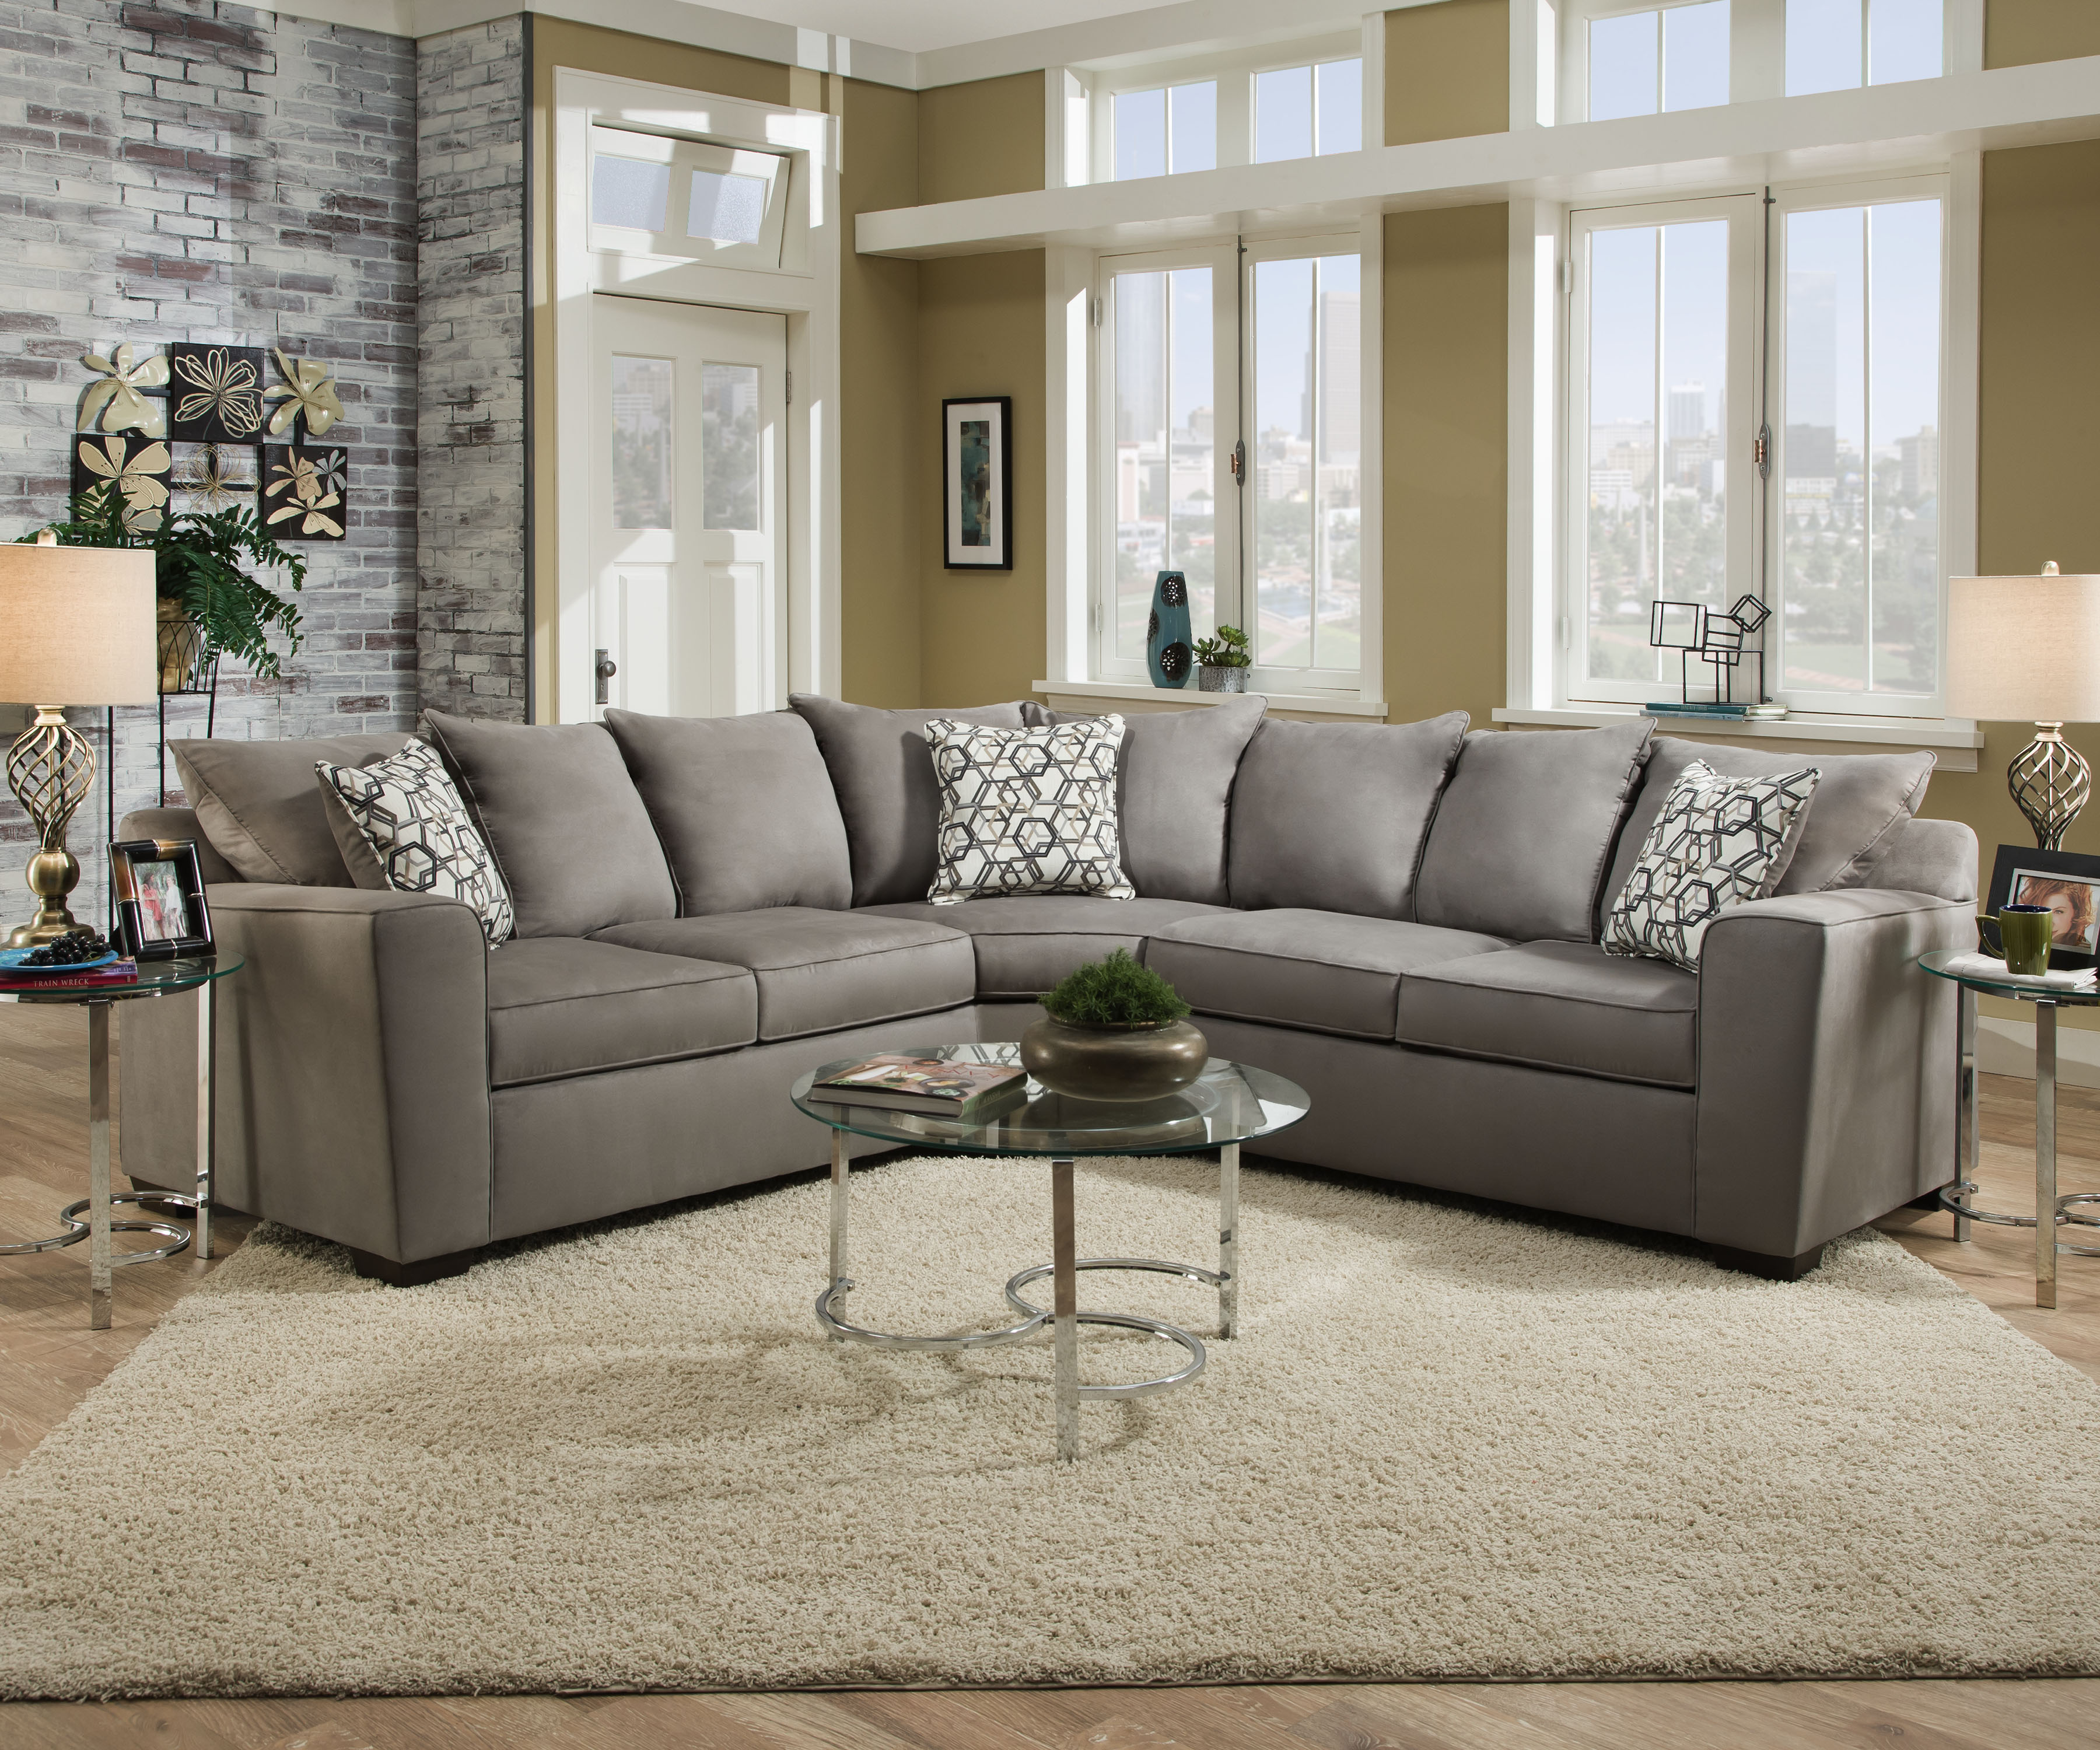 Lssim9073 simmons beautyrest sectional reg 1799 now 1399 pina furniture for Simmons living room furniture sets